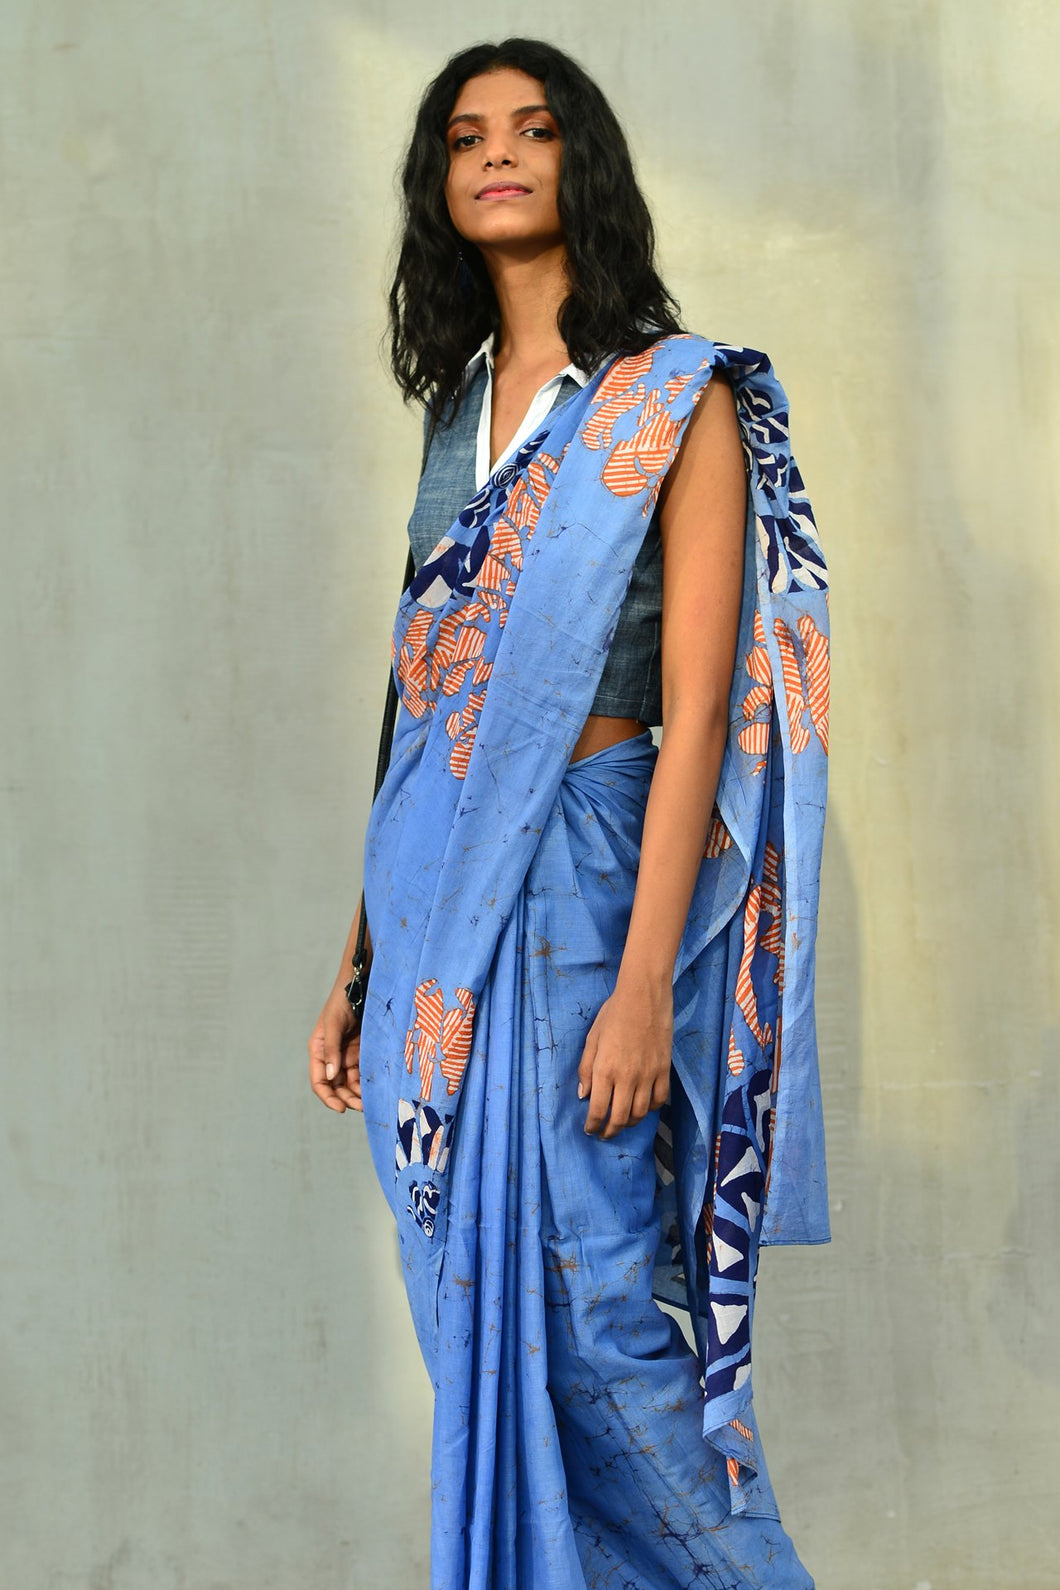 Urban Drape Floral fantasy 1 Saree - Fashion Market.LK